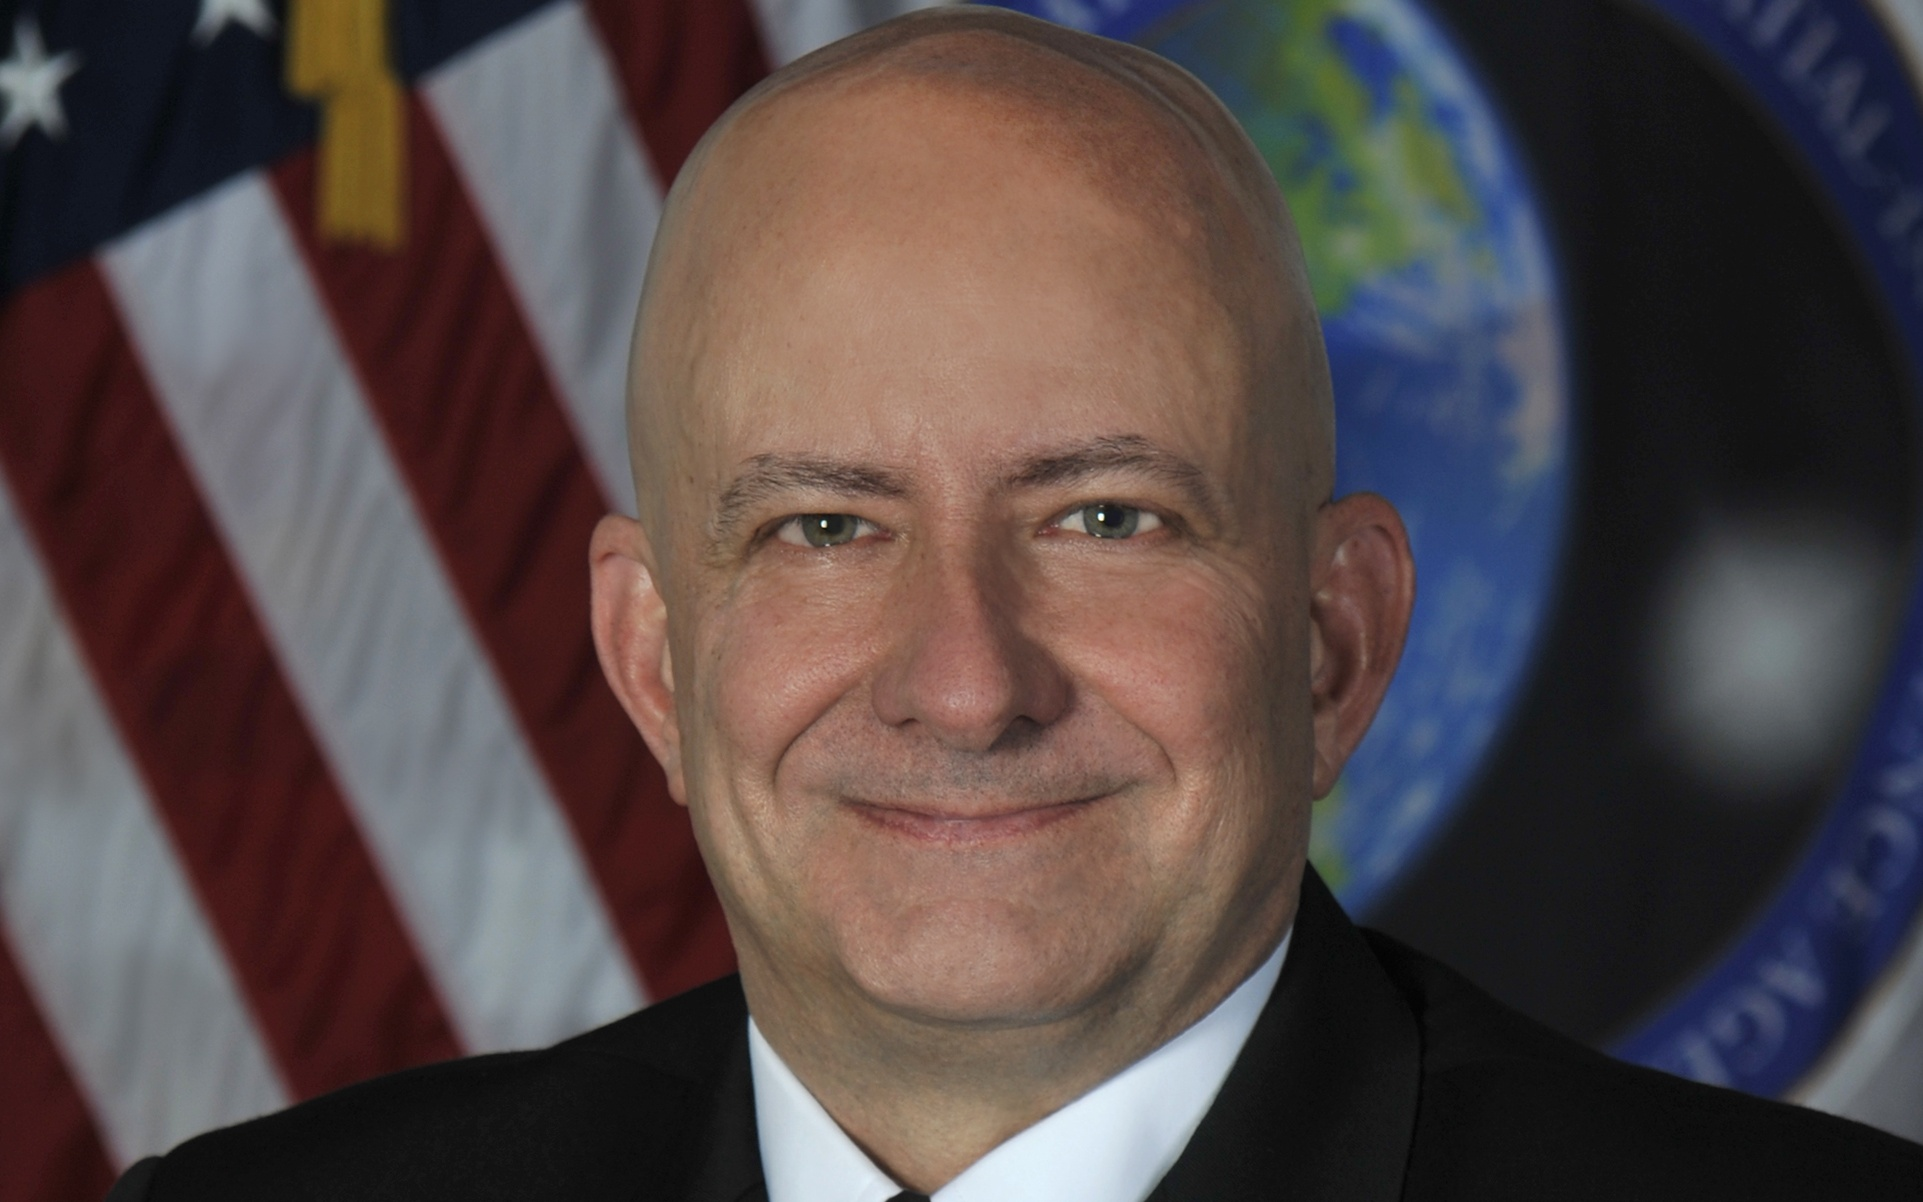 Vice Adm. Robert Sharp, director of the National Geospatial-Intelligence Agency, shares his thoughts on how the agency is adapting to an evolving mission space. (Courtesy NGA)